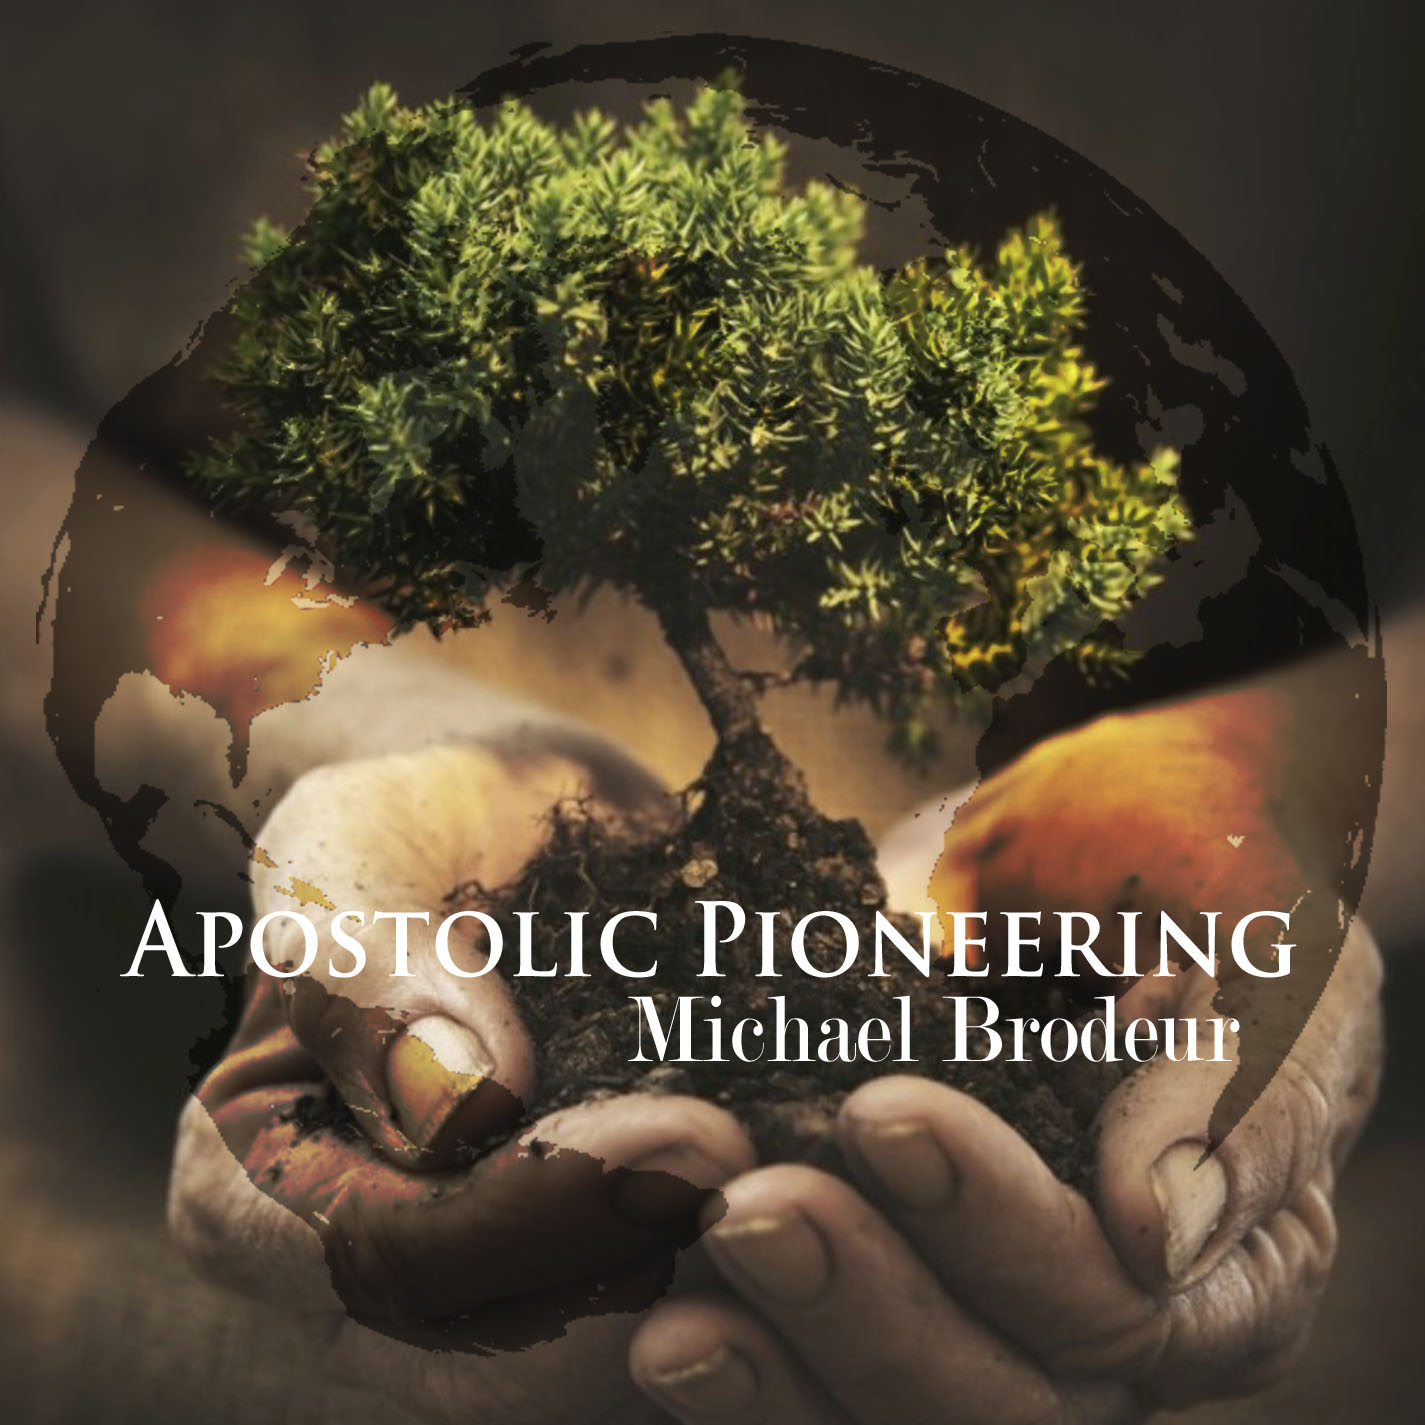 Apostolic Pioneering Mp3s Michael Brodeur